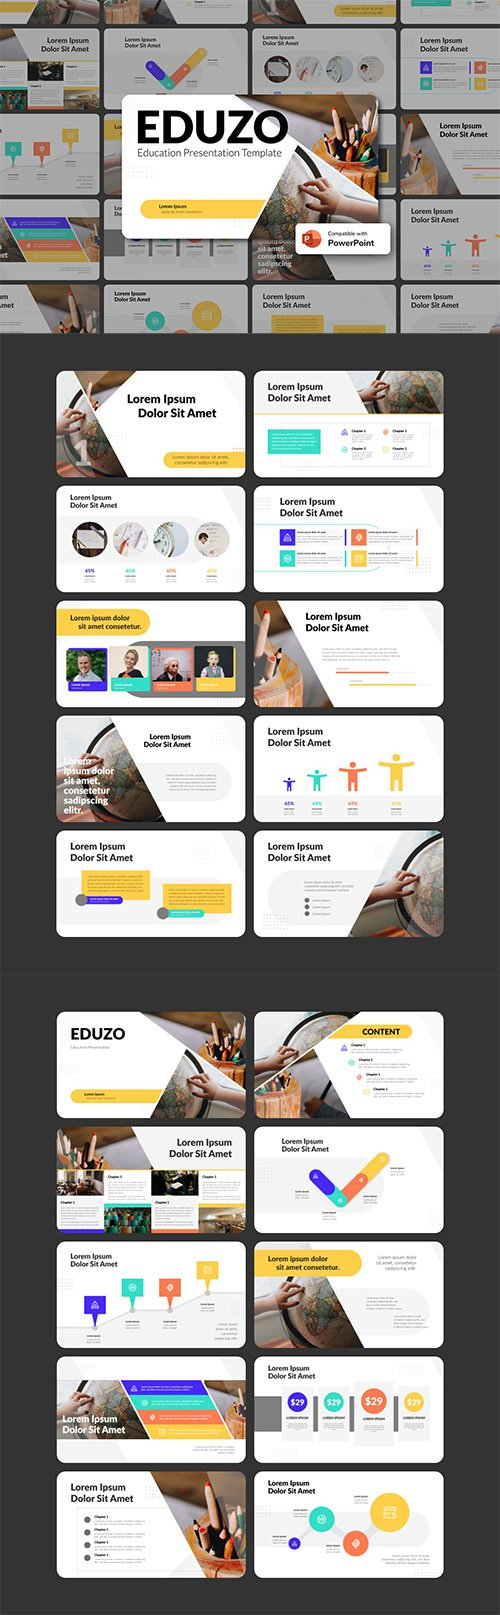 EDUZO - Education PowerPoint Template